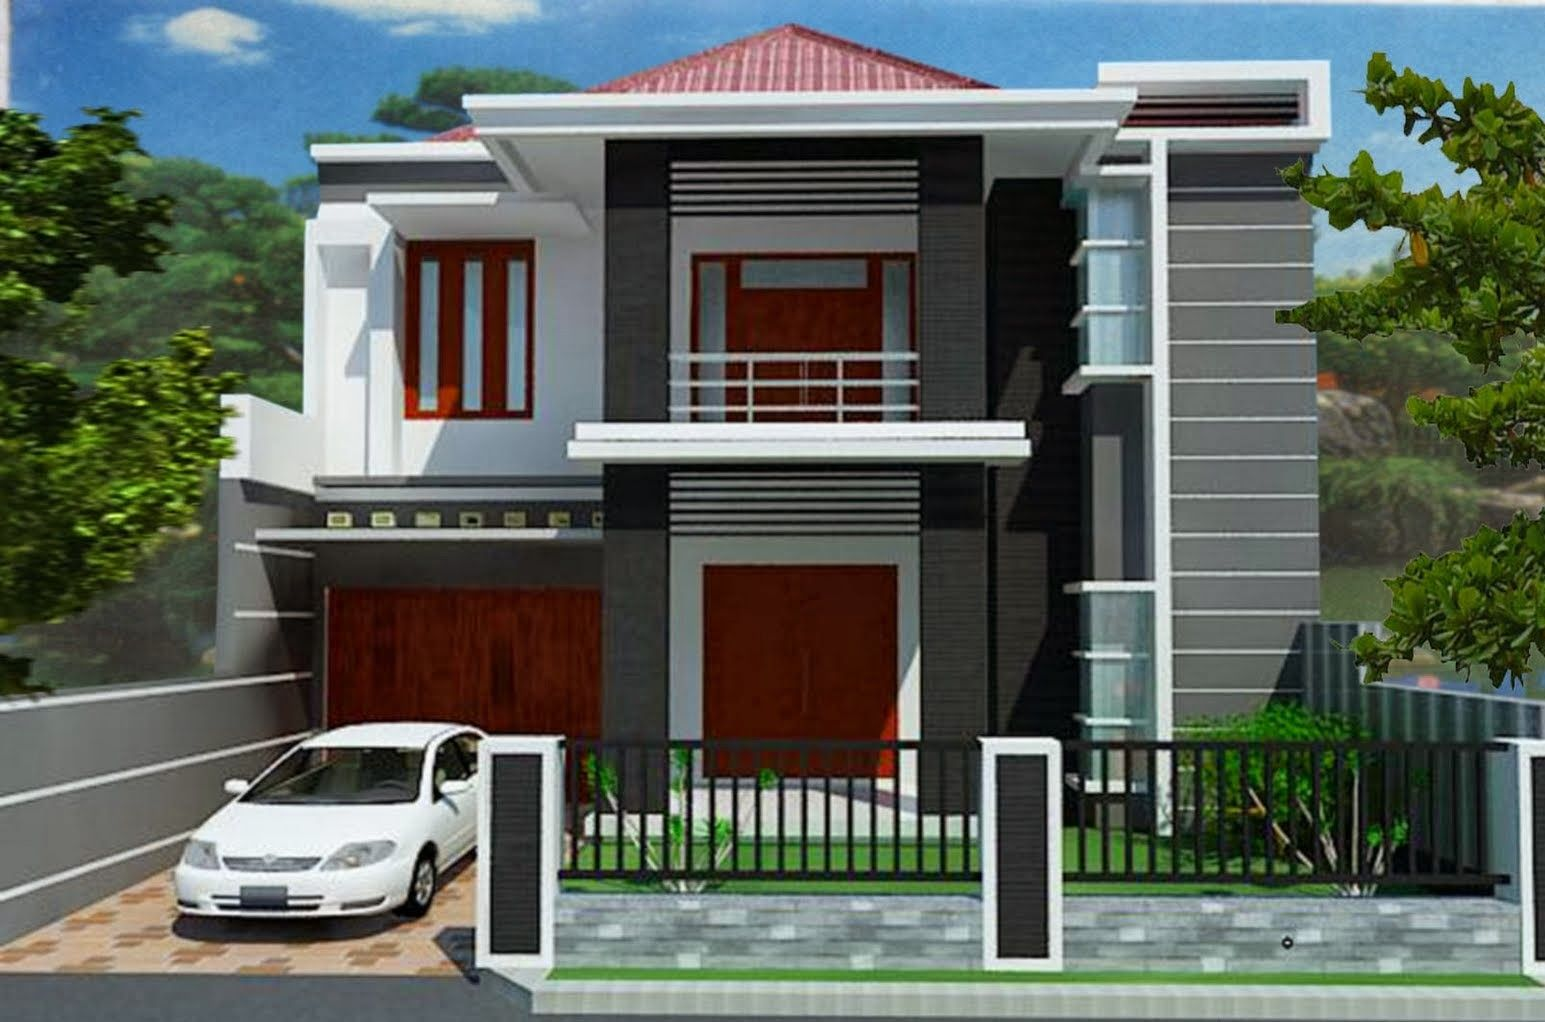 House Minimalis minimalist house design level two | desain rumah minimalis dua